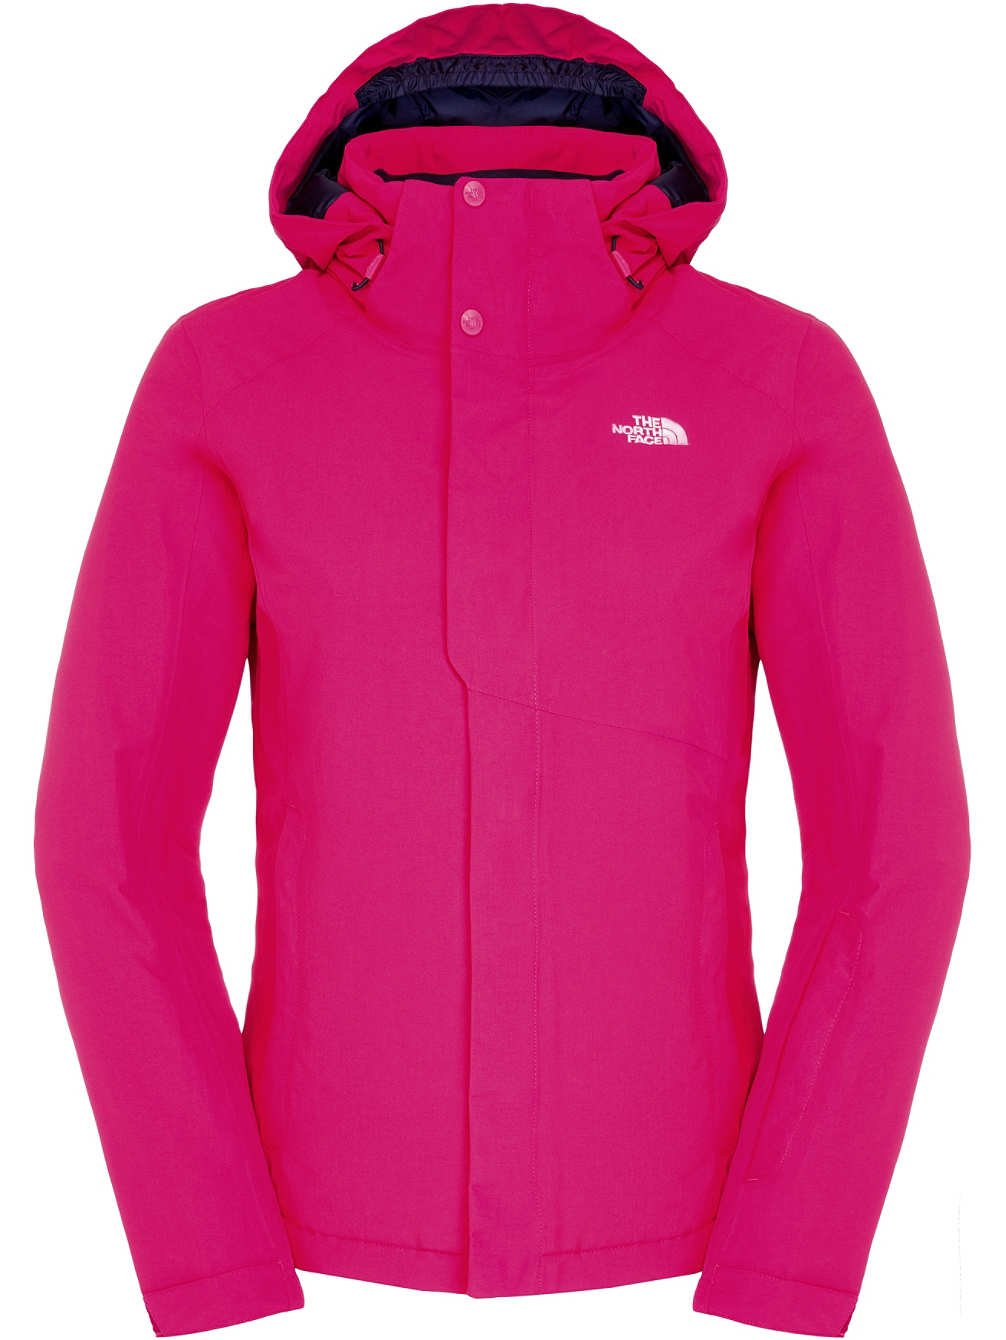 Damen Snowboard Jacke The North Face Alpen-Ziest Jacket günstig kaufen